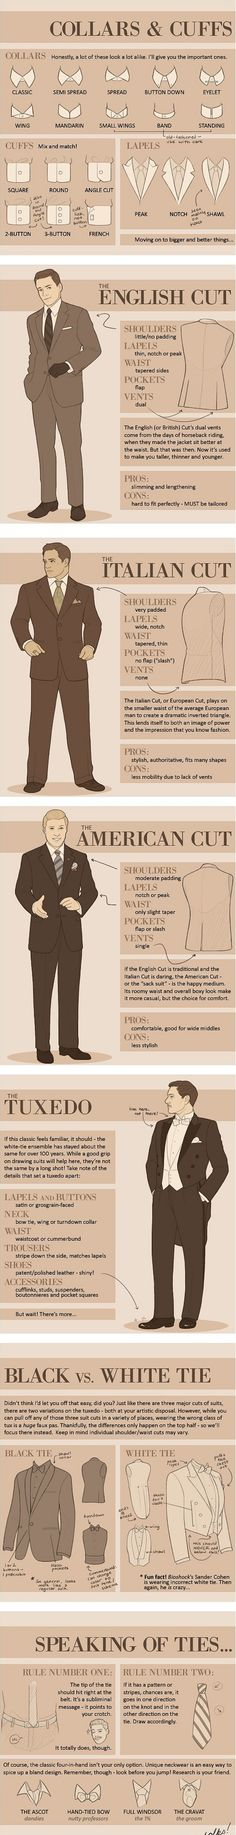 Wedding Suits Decoded